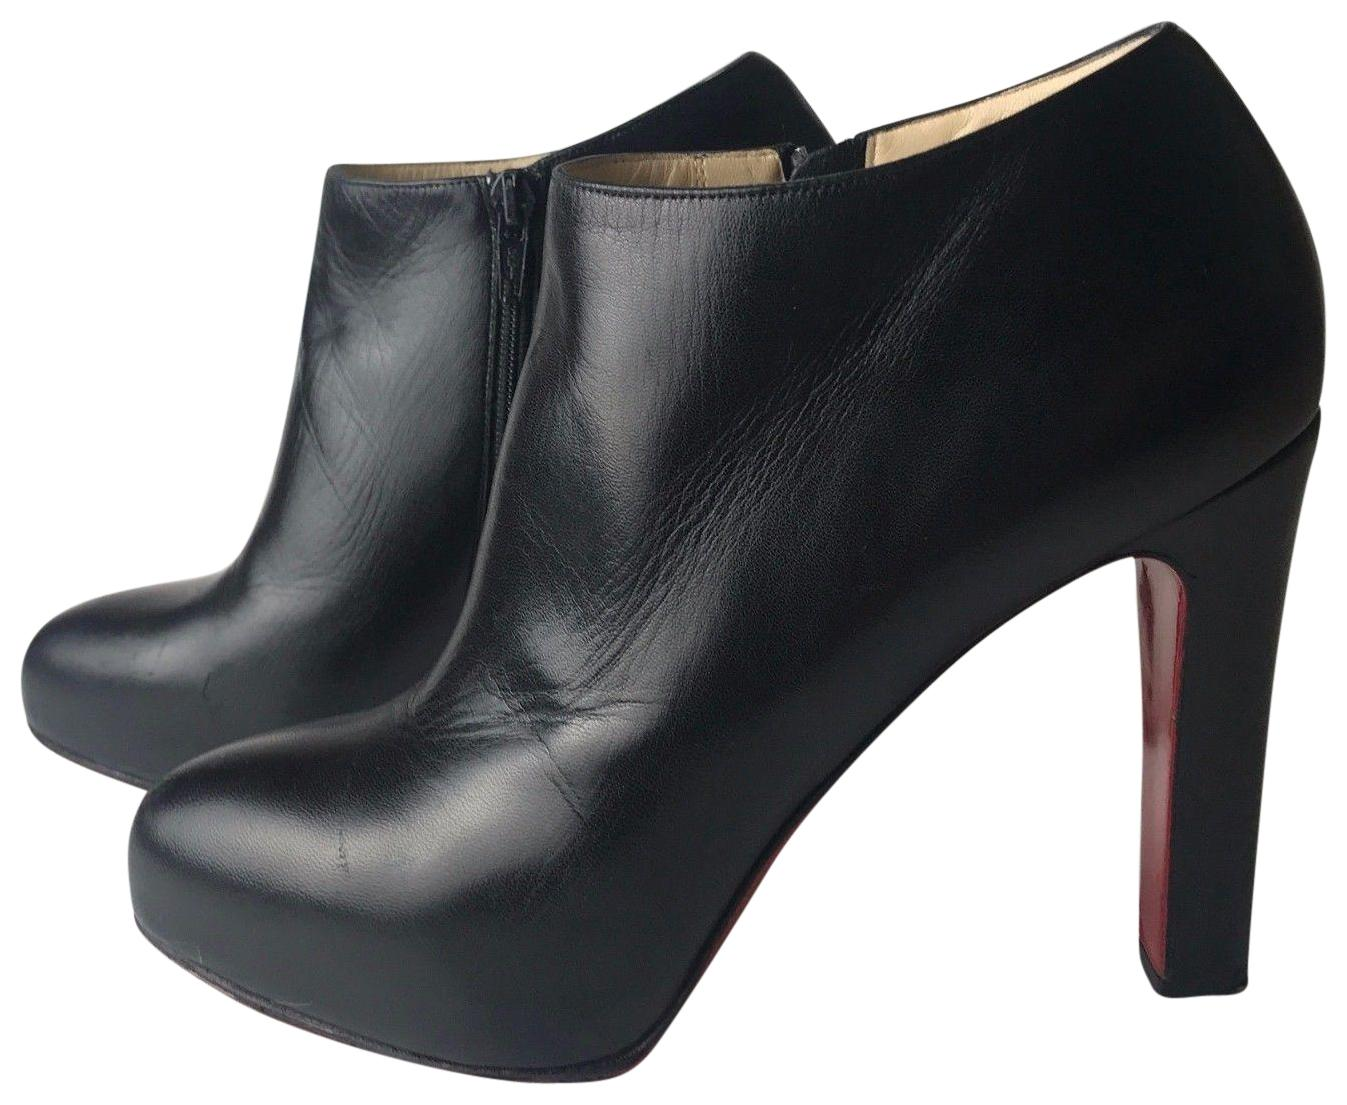 d07ba460fafb discount code for christian louboutin vicky suede ankle boots black ...